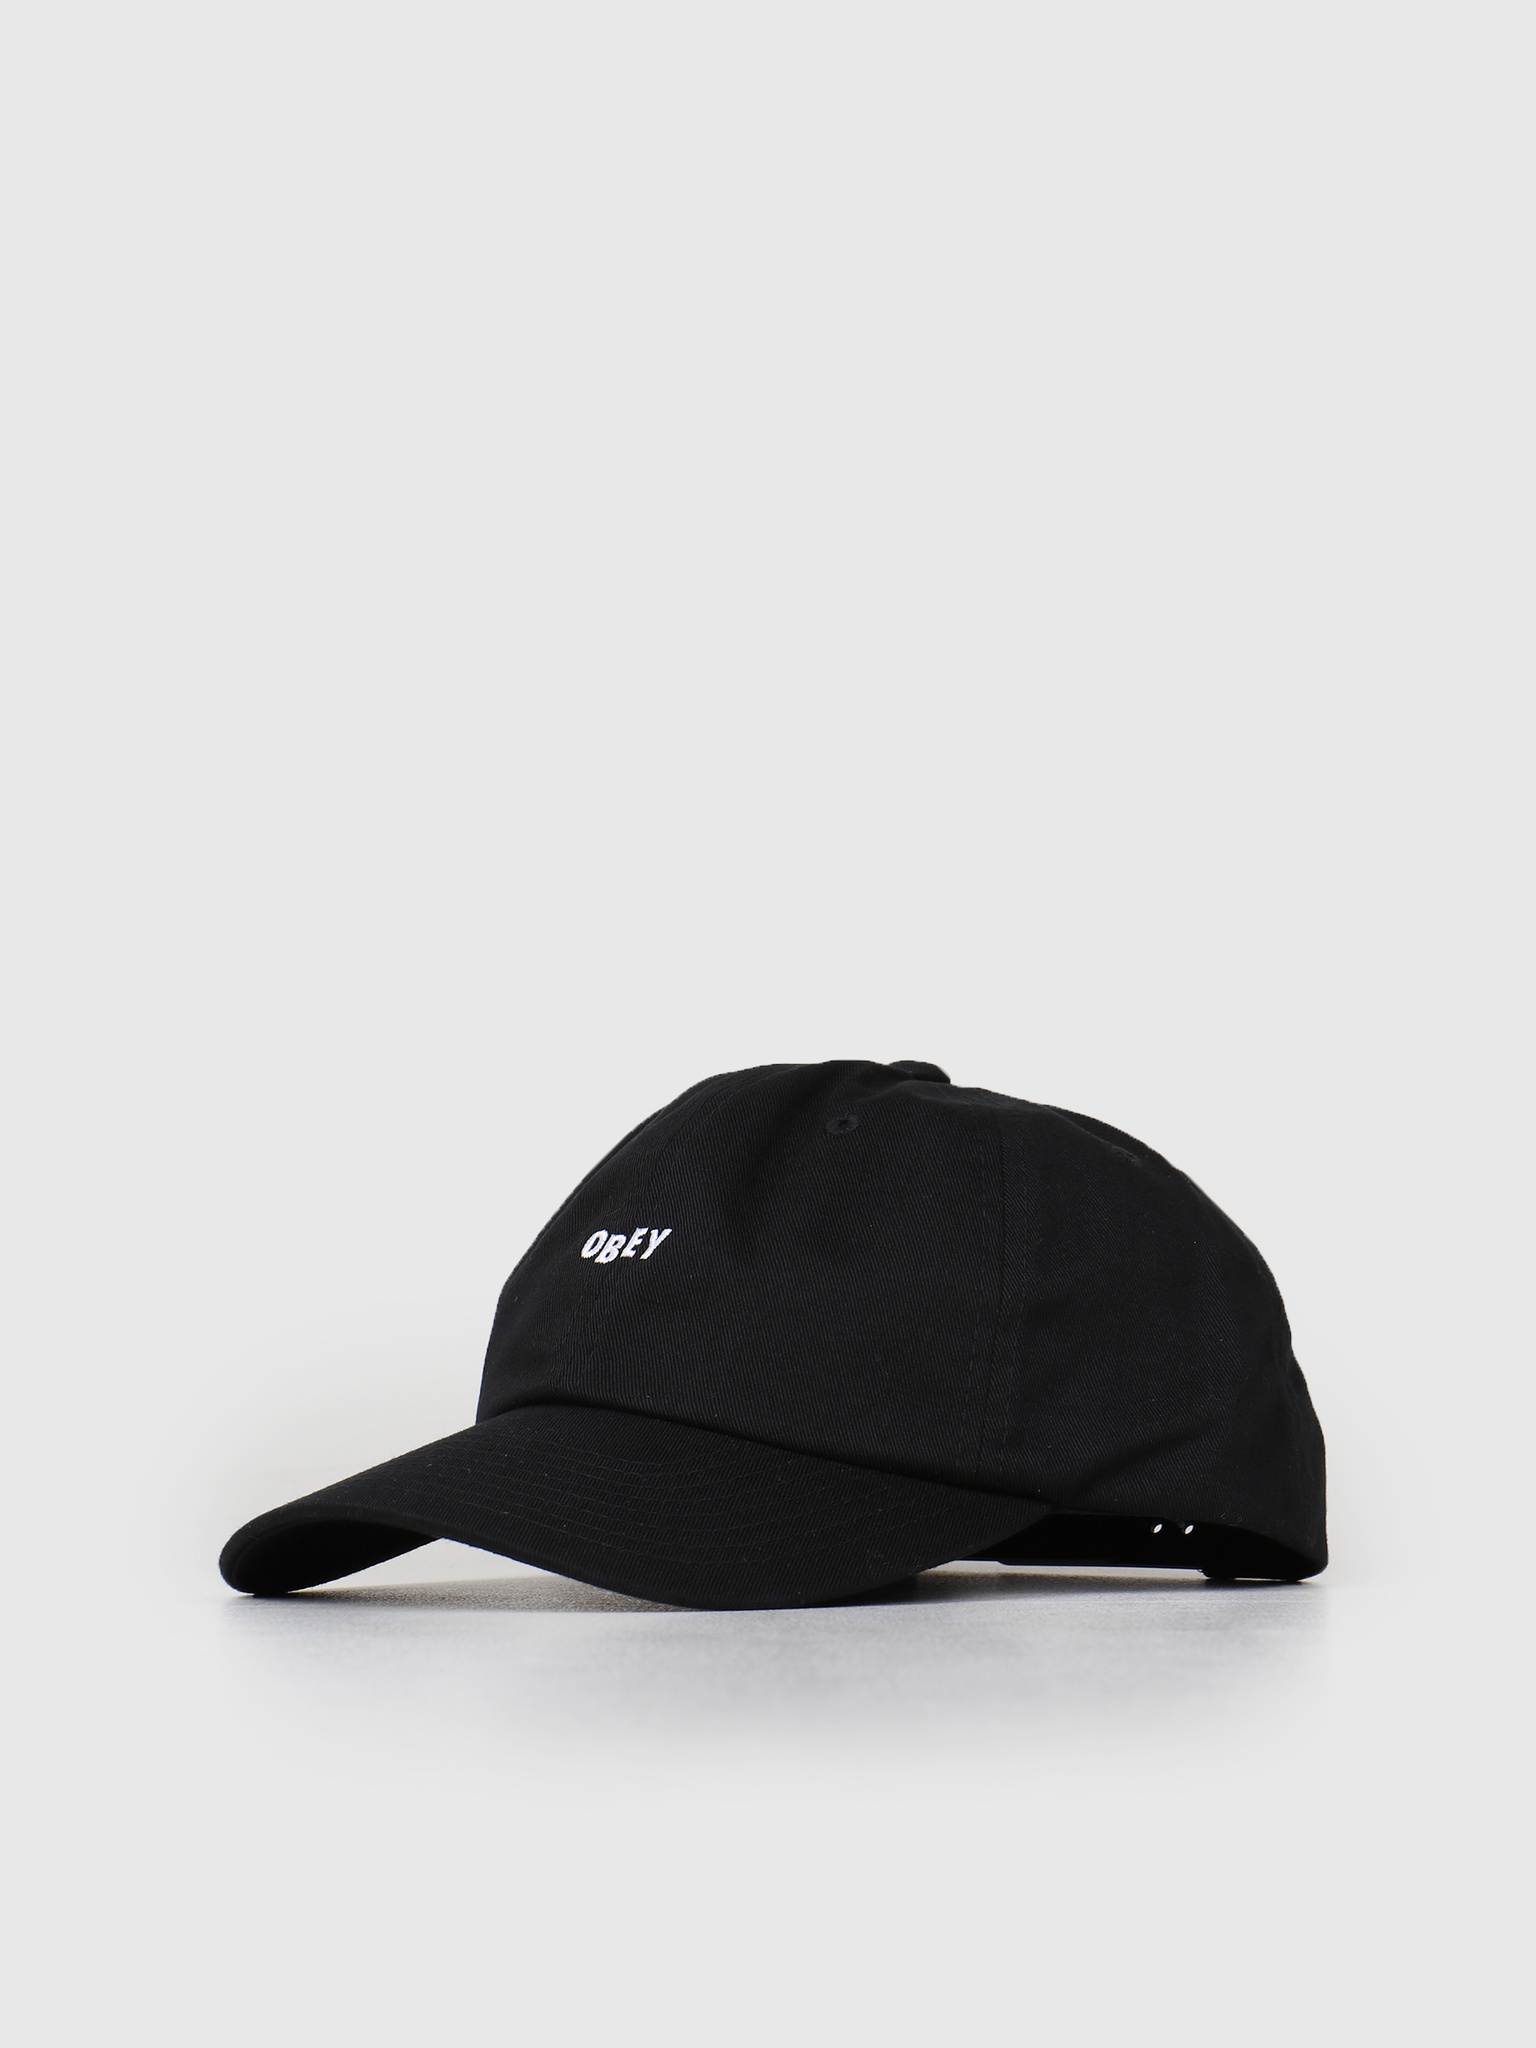 Obey Obey Cutty 6 Panel Snapback Black 100580074